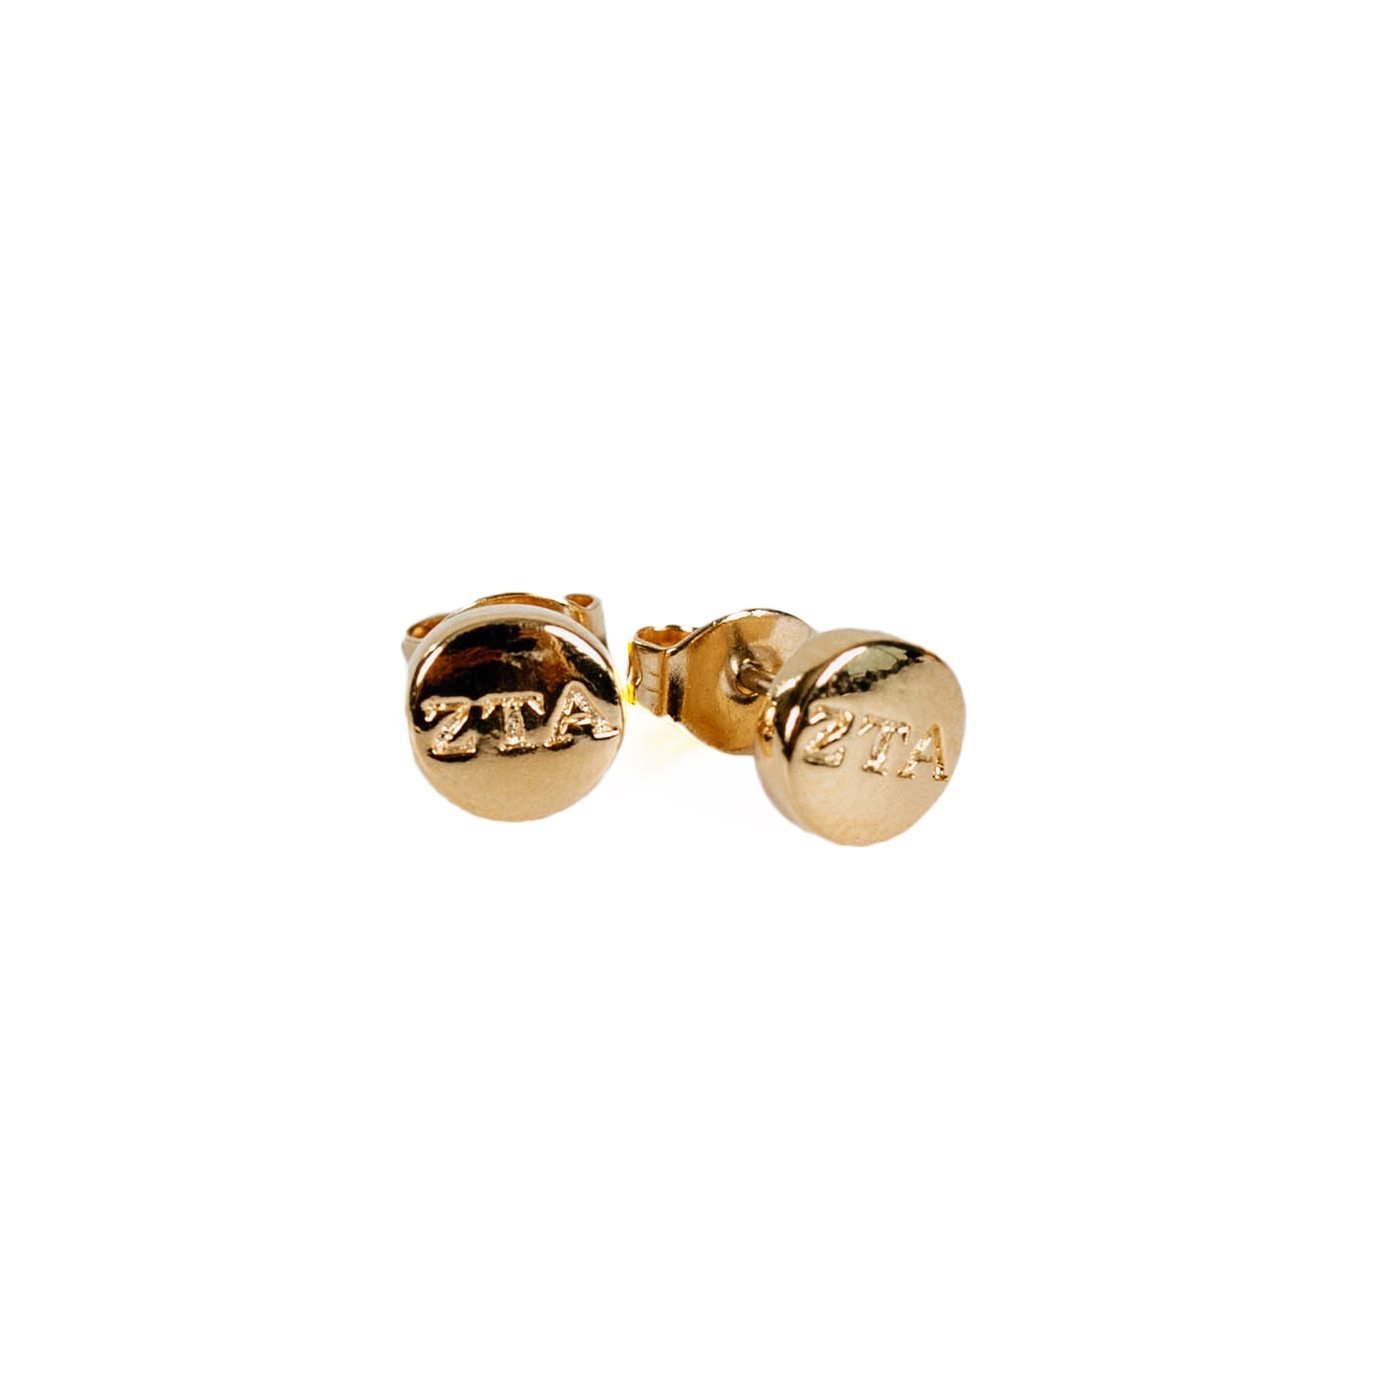 Zeta Mini Stud Earrings